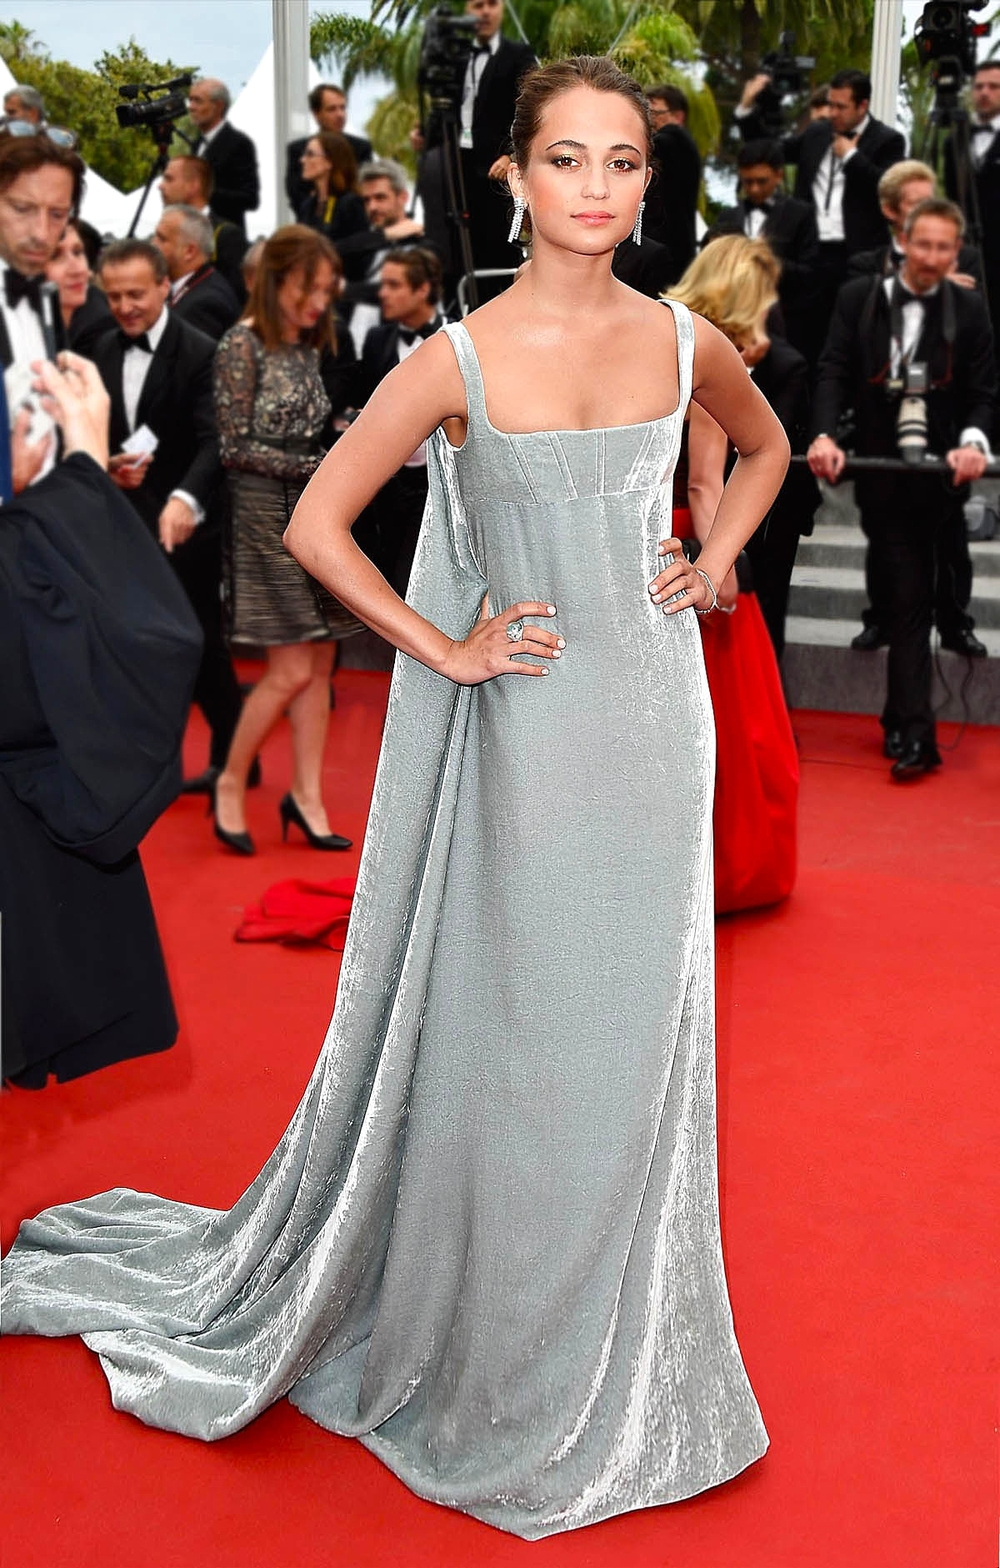 Swedish actress Alicia Vikander in Valentino Couture                                vogue.co.uk/ Getty